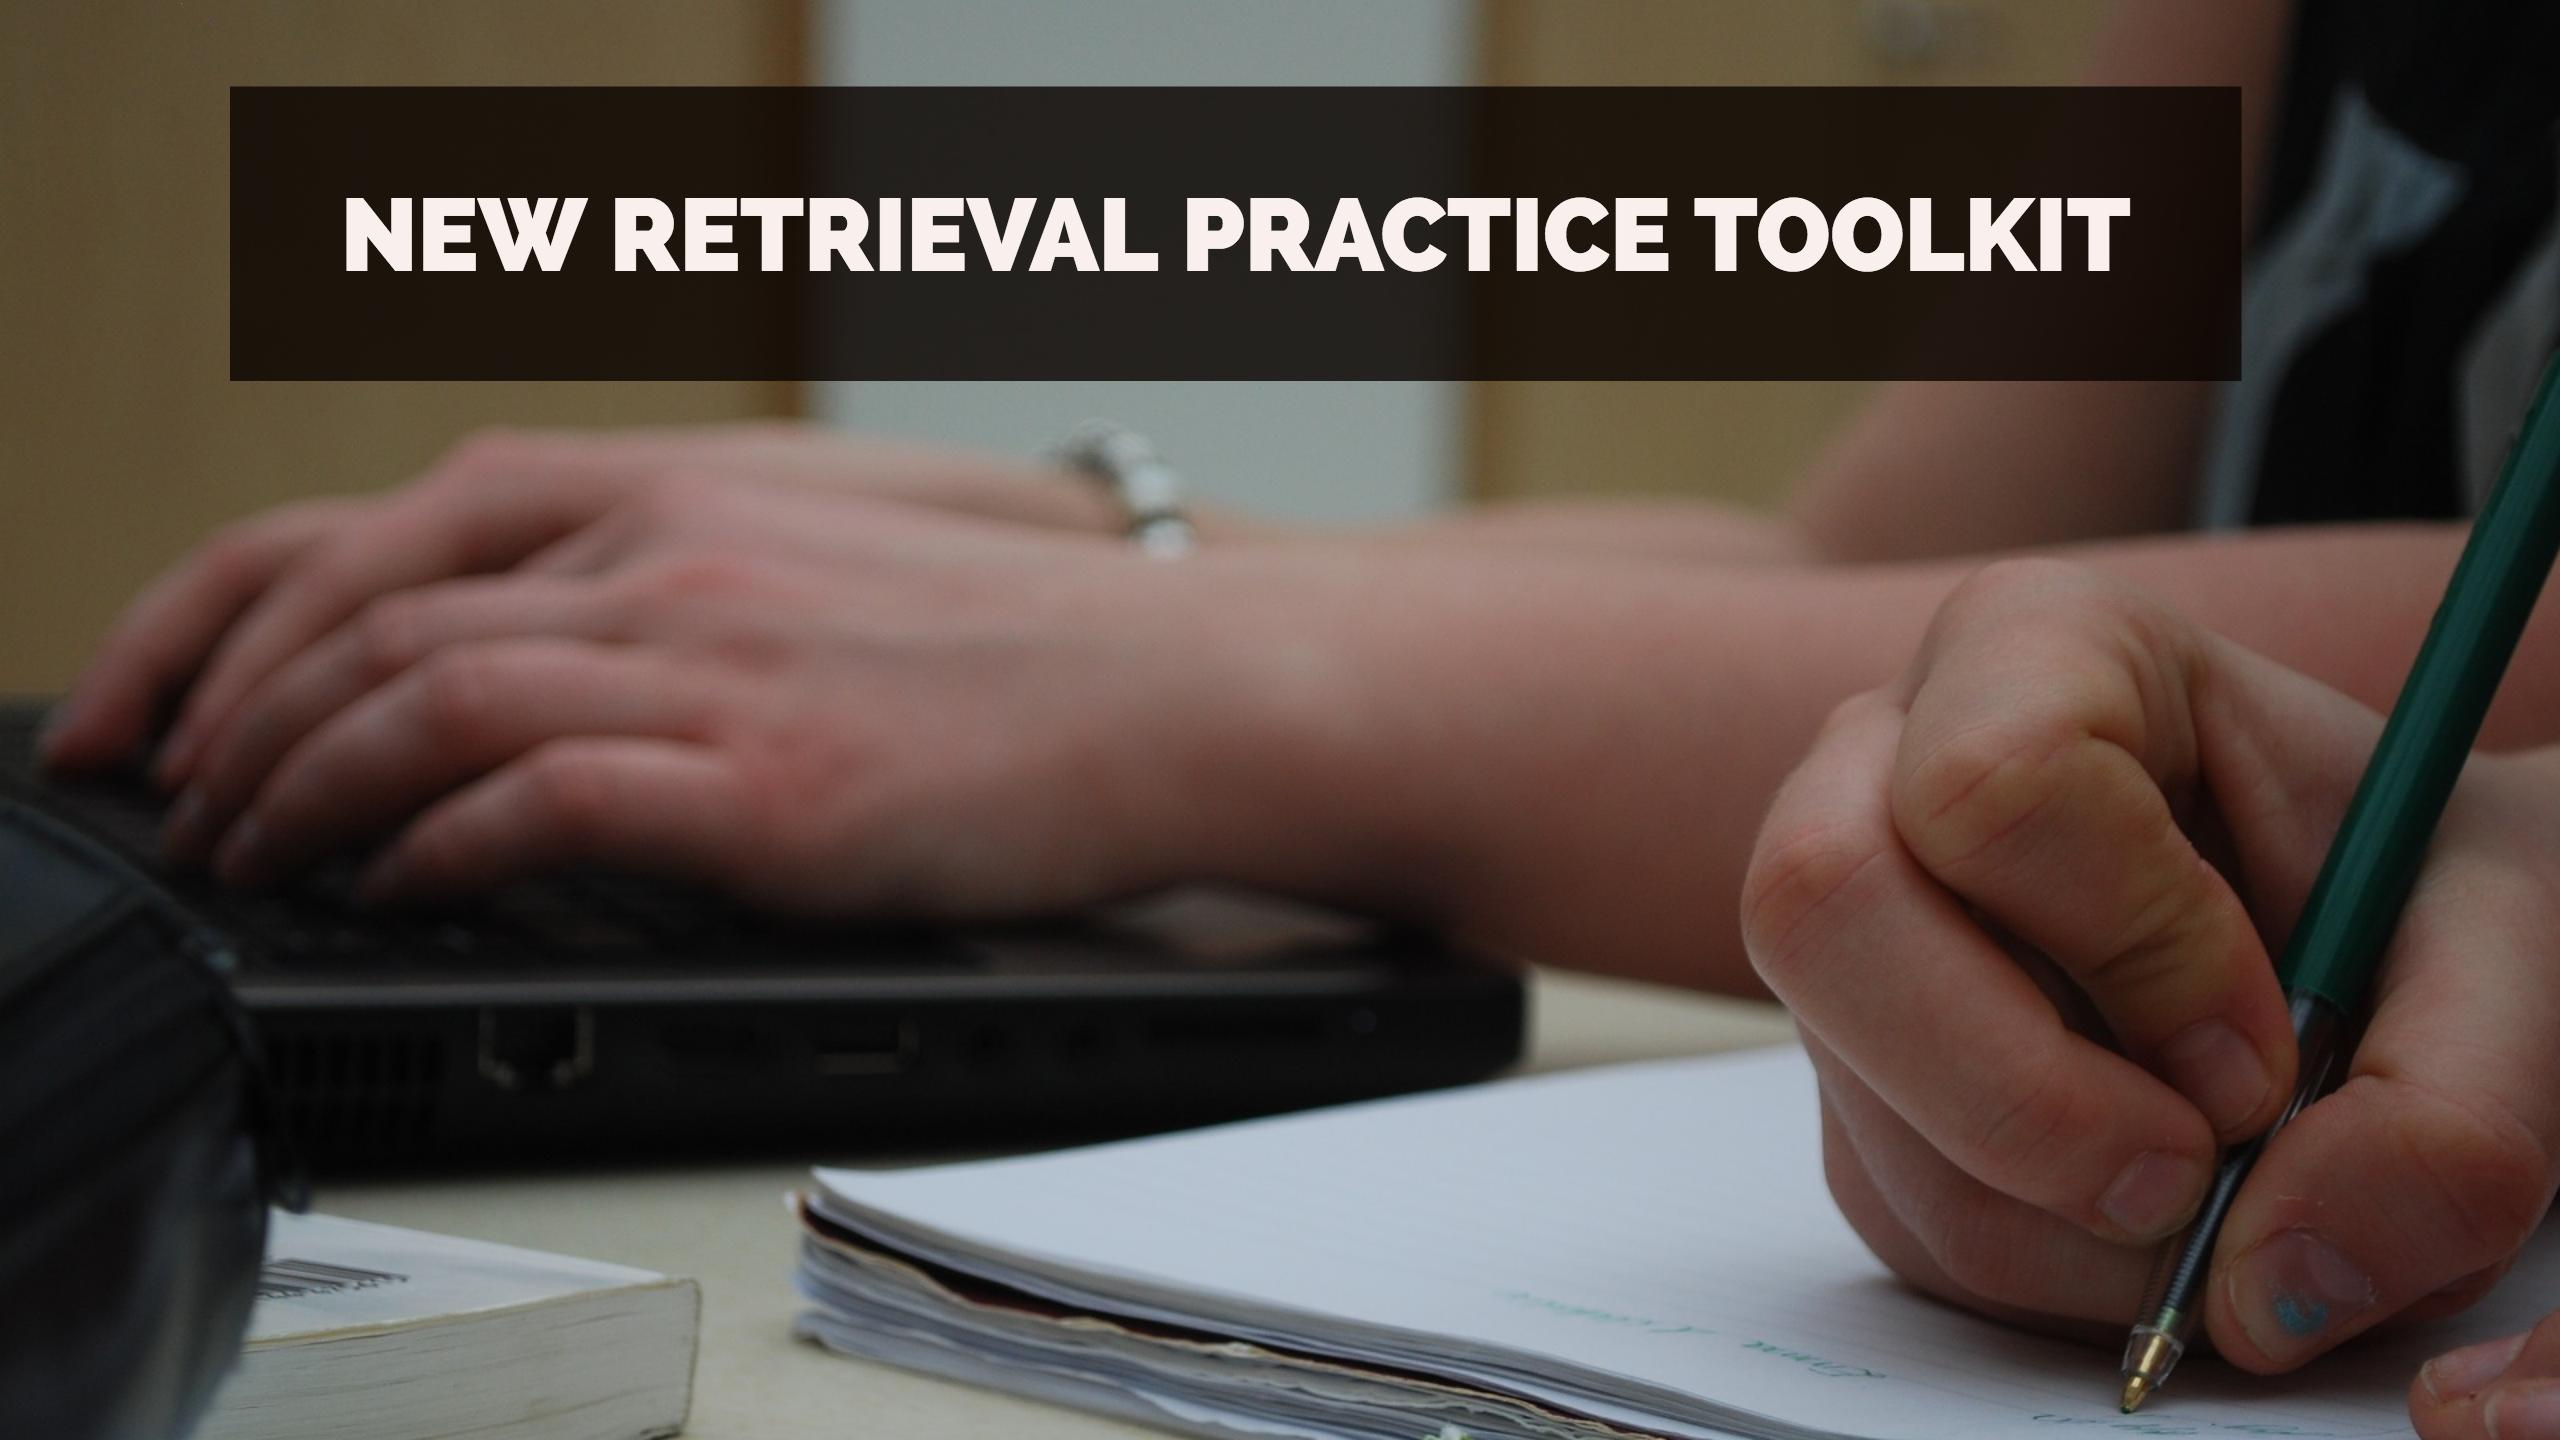 retrieval practice toolkit